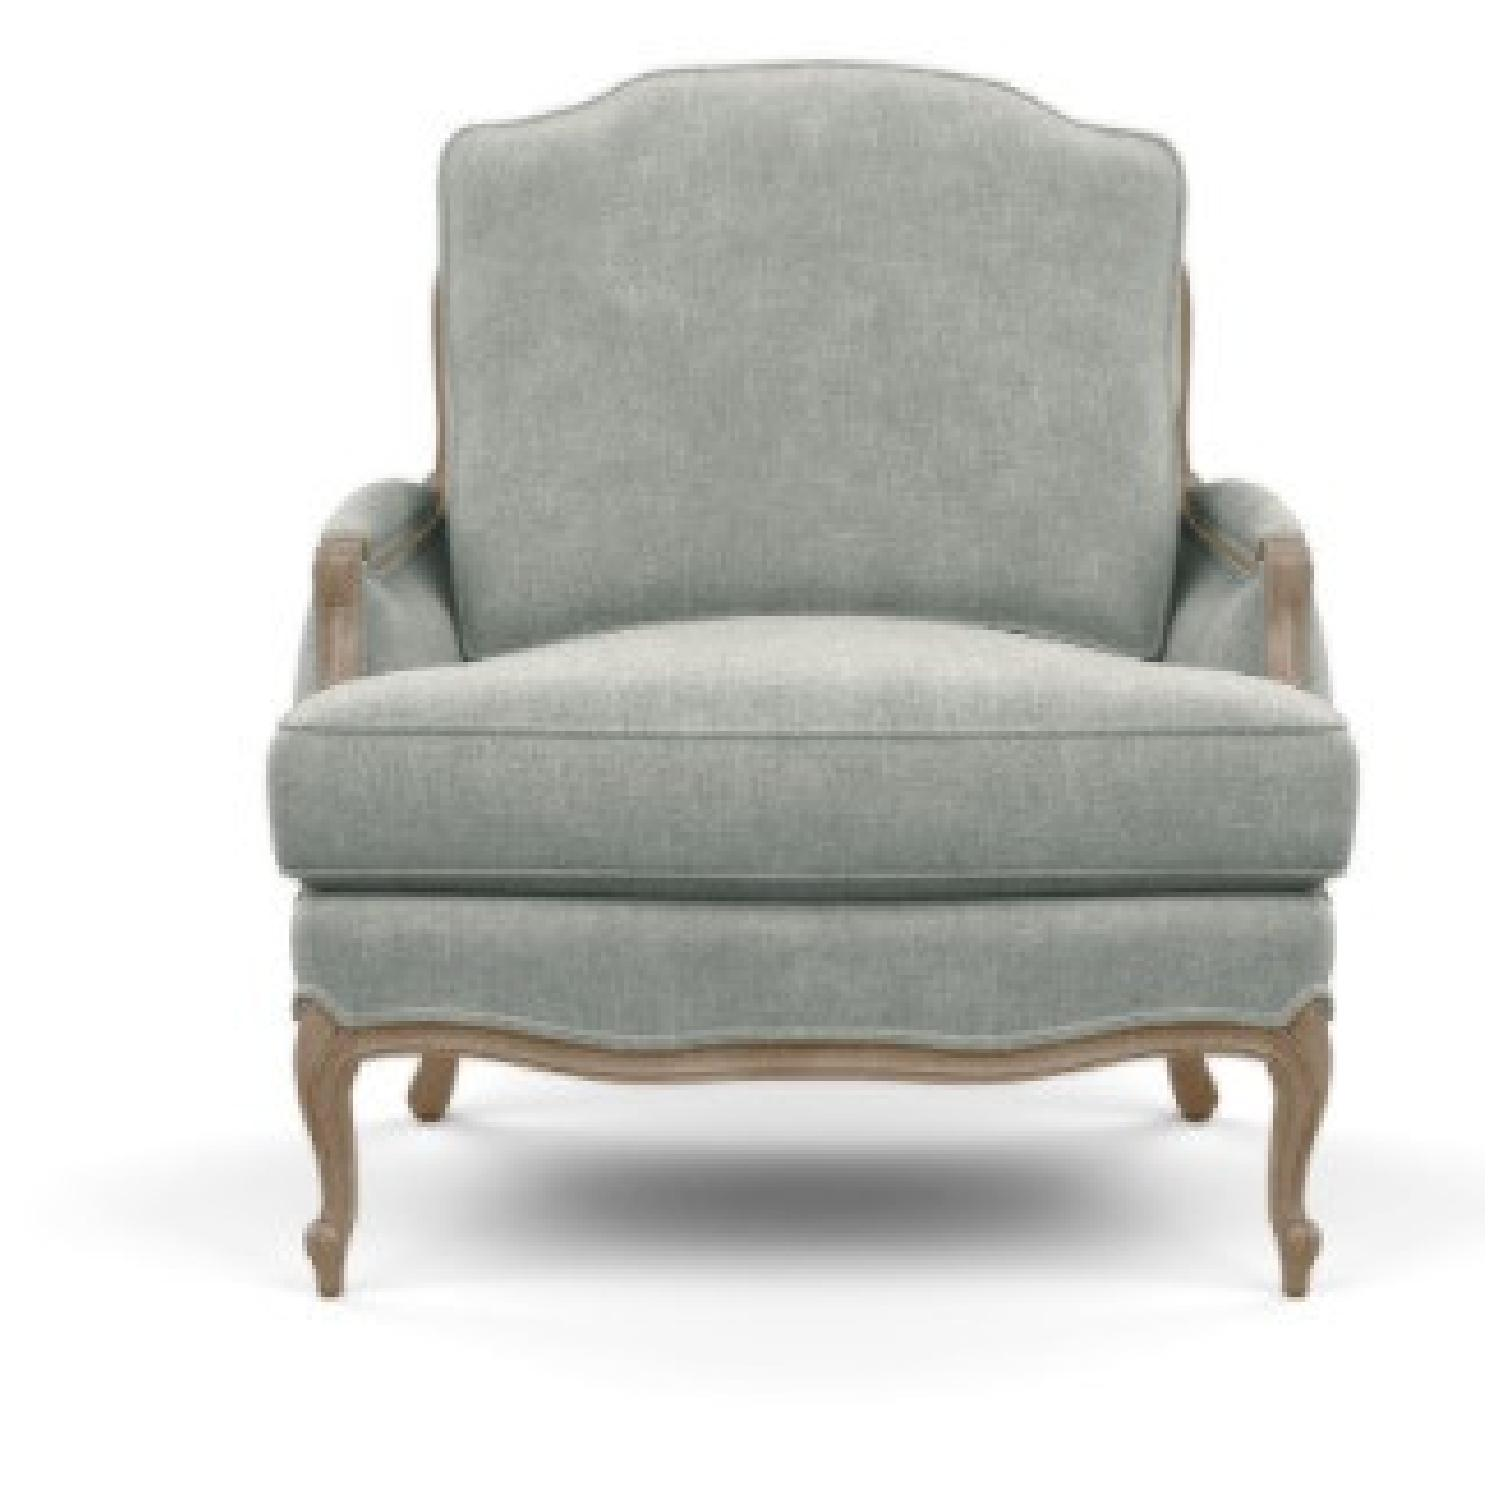 Ethan Allen Gray Versailles Accent Chair - image-8